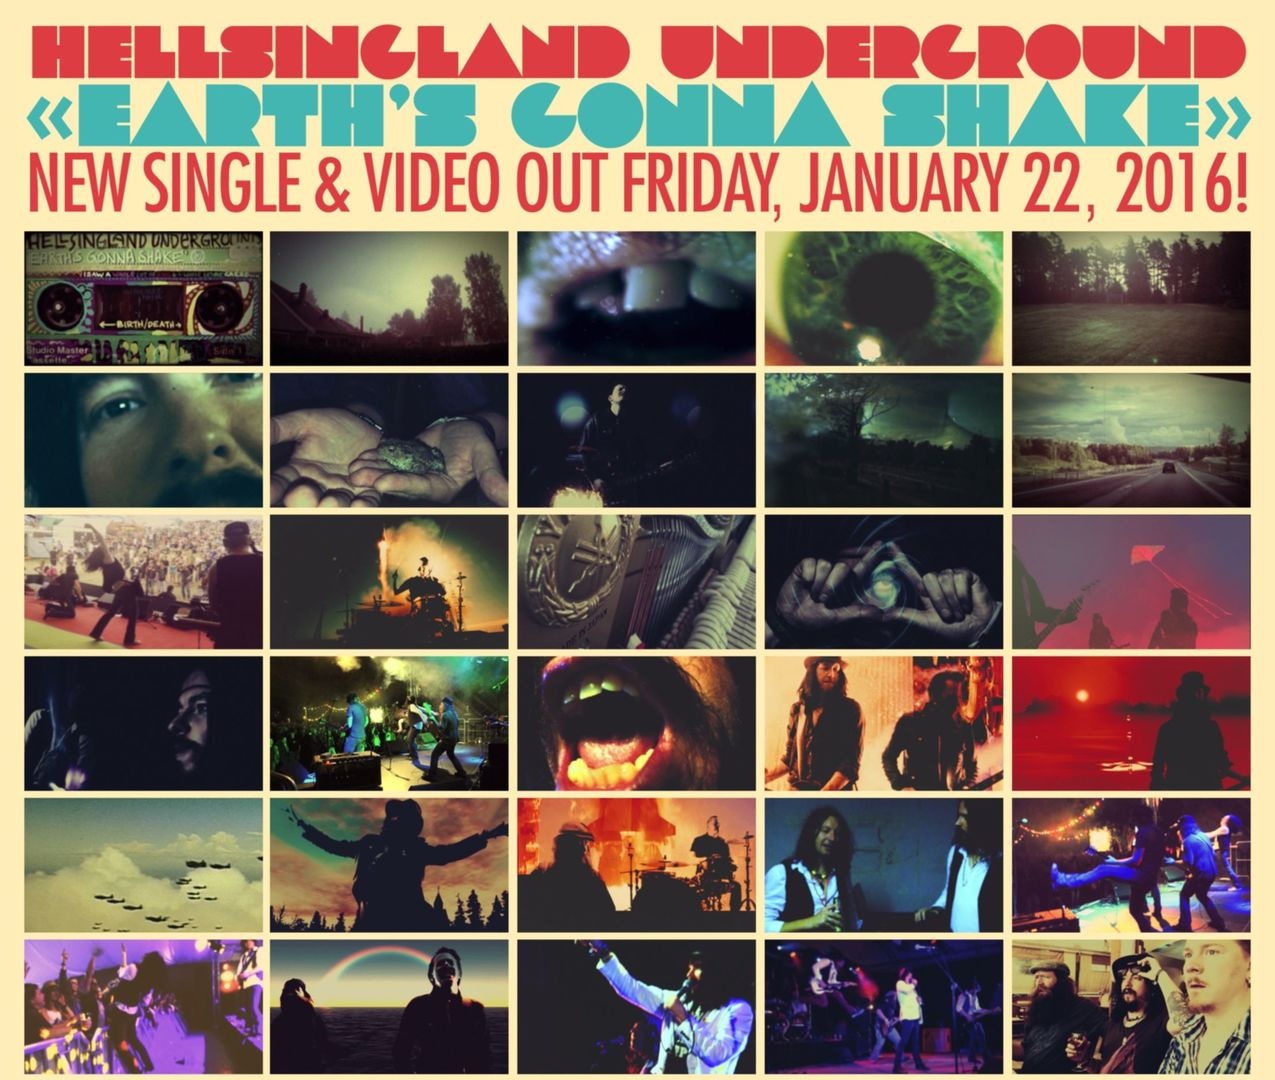 EARTH GONNA SHAKE VIDEO poster